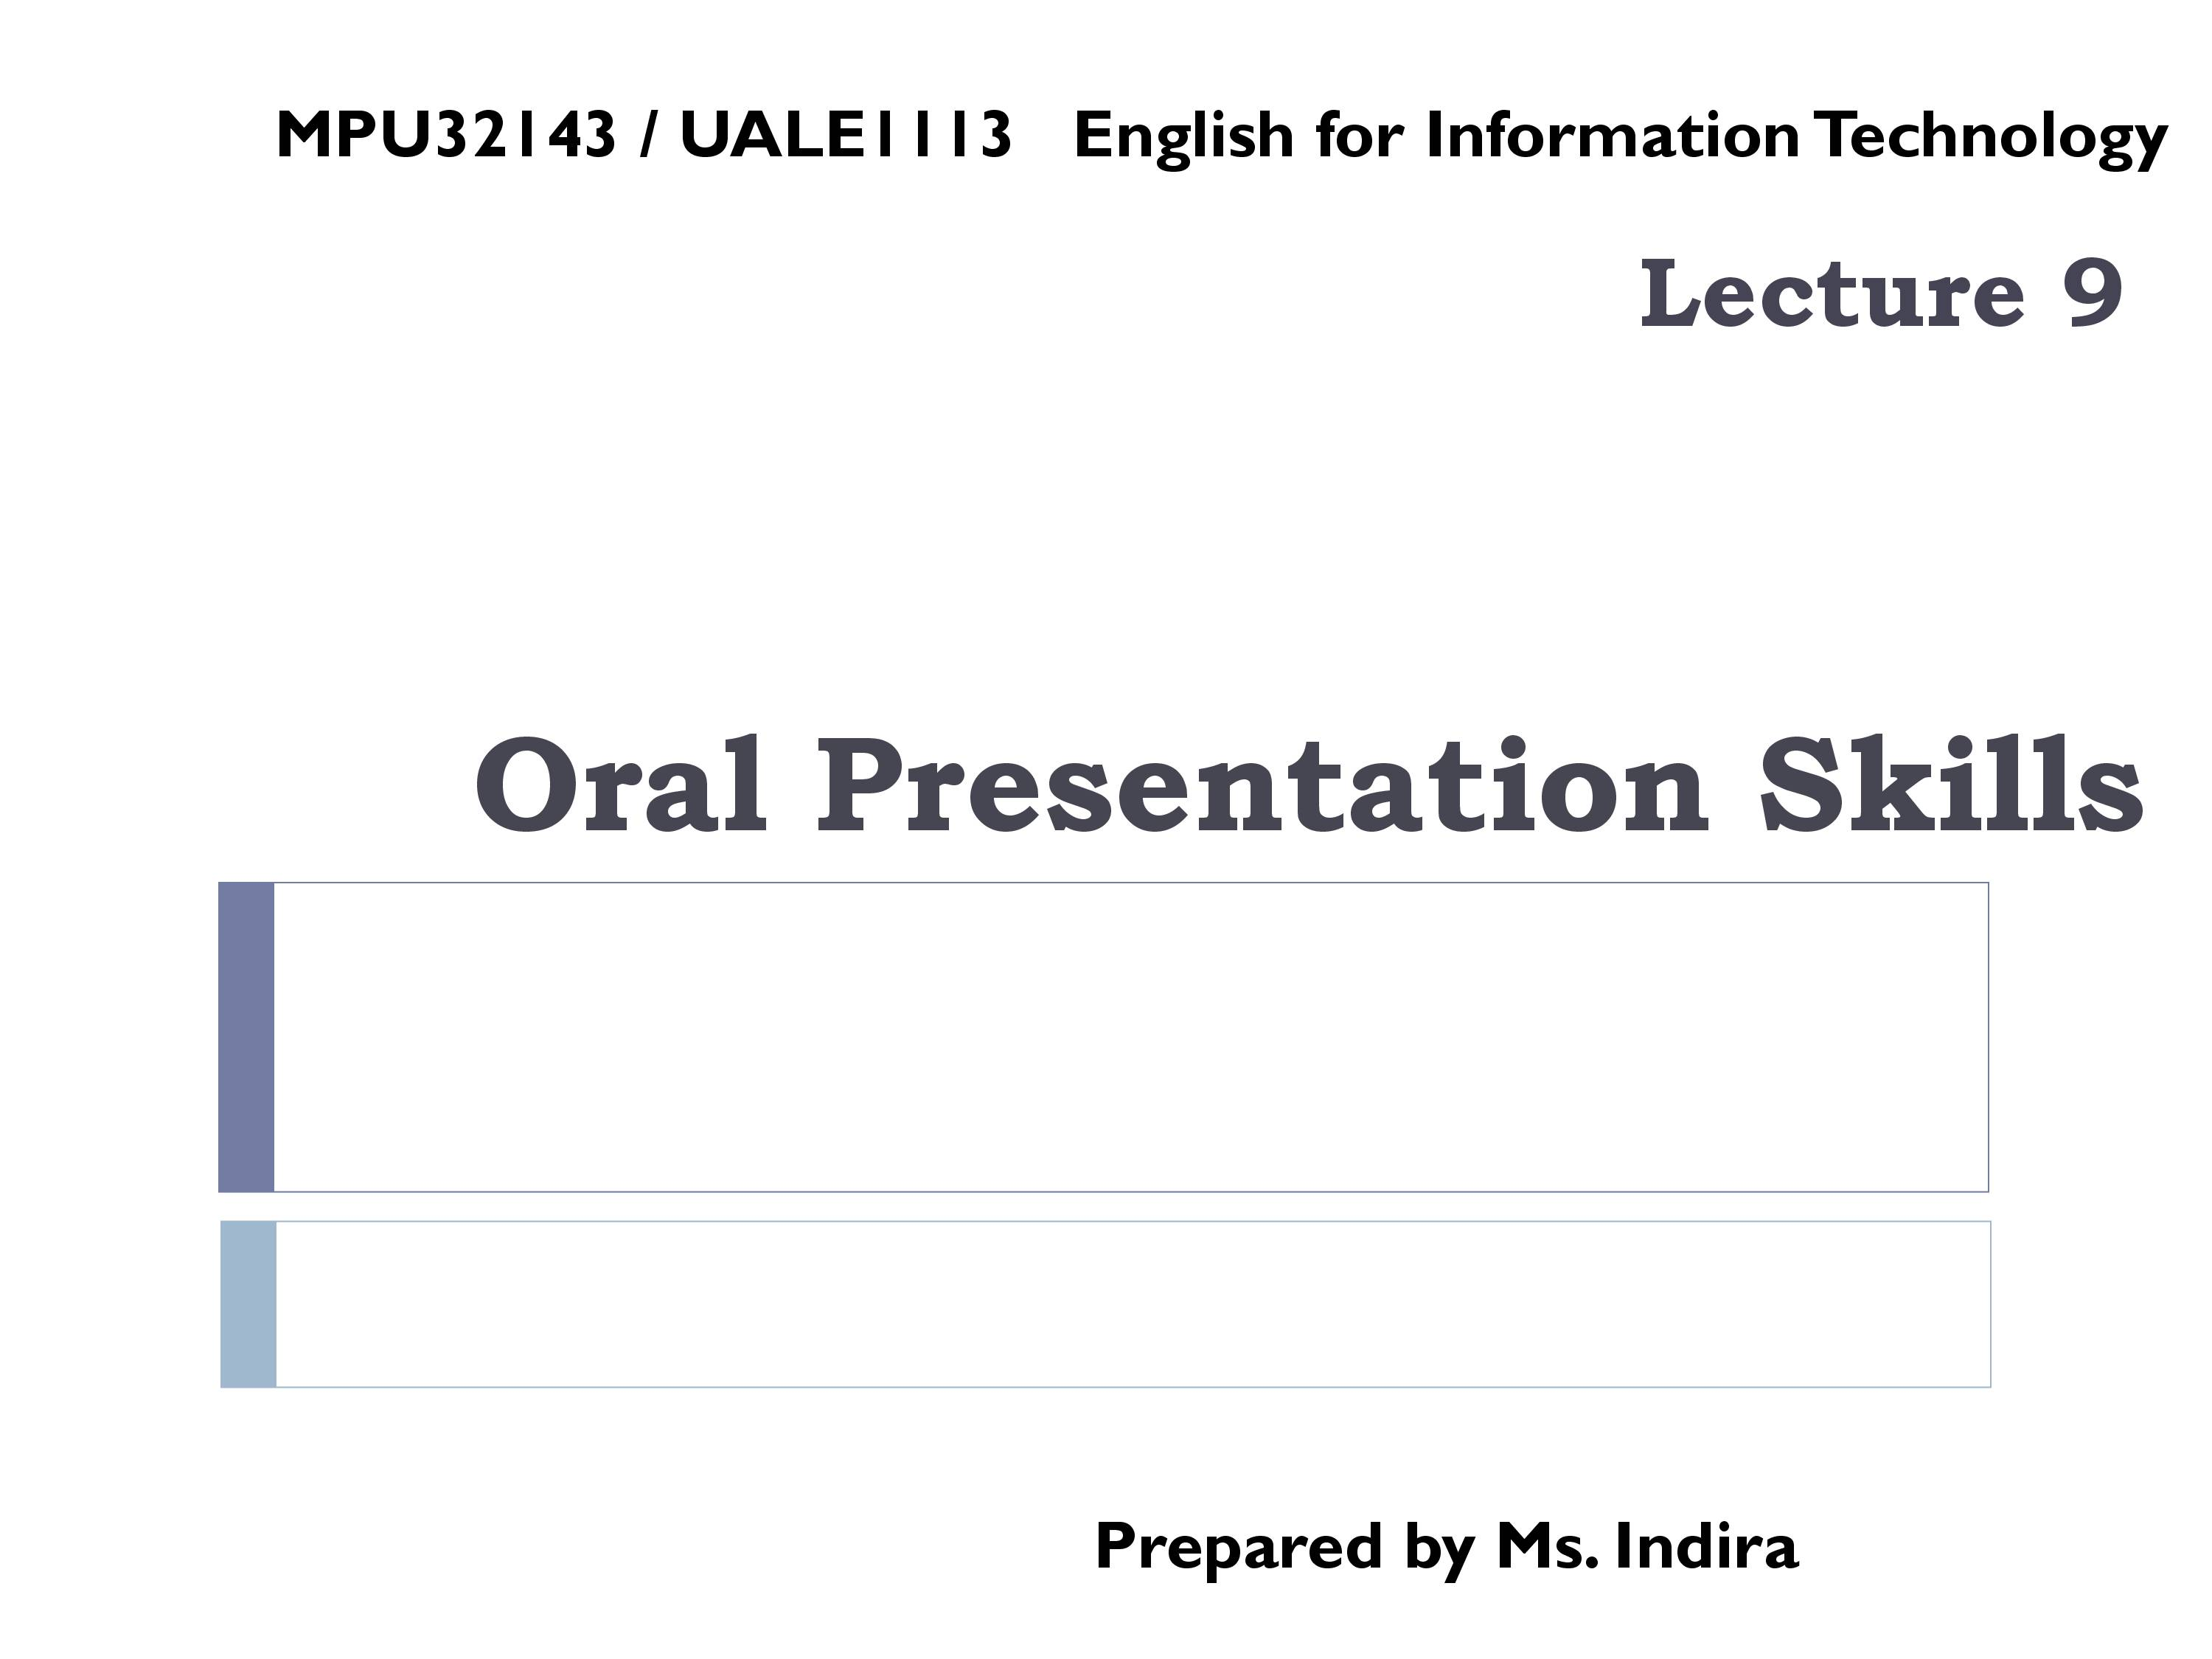 PPT on Oral Presentation